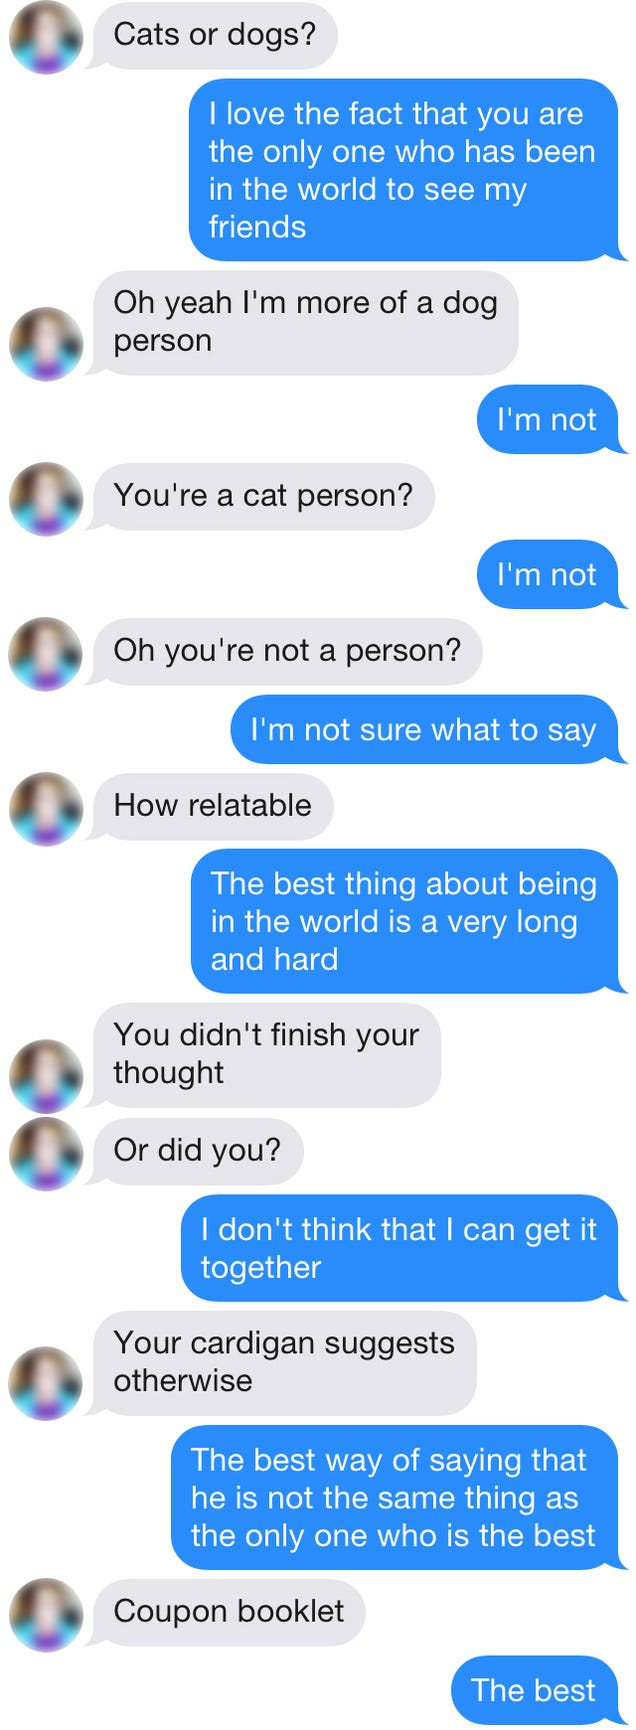 How to use tinder to get laid